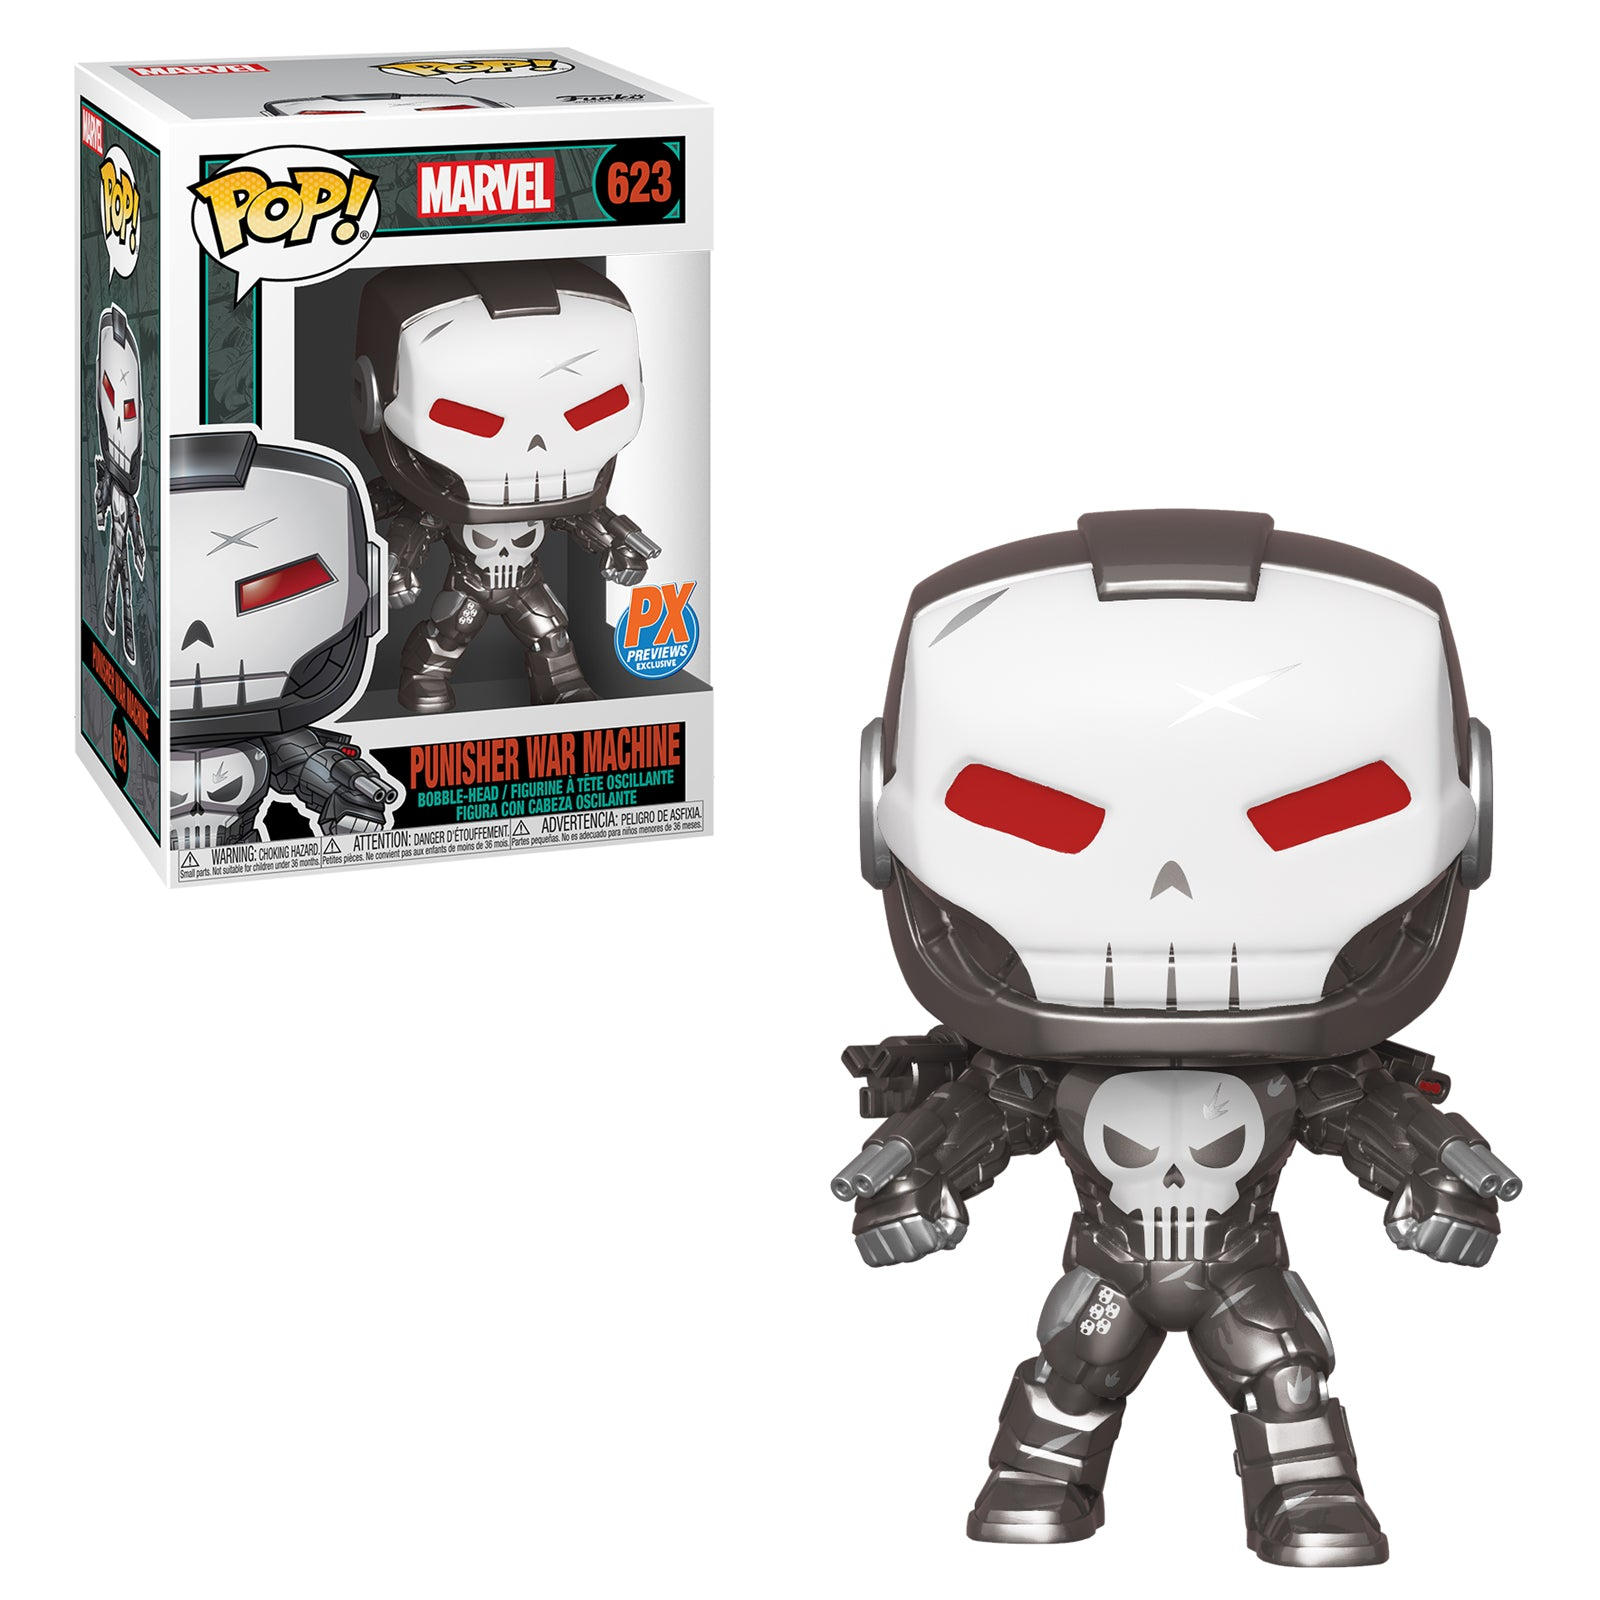 Marvel Punisher War Machine Previews Exclusive with Comic (Preorder)